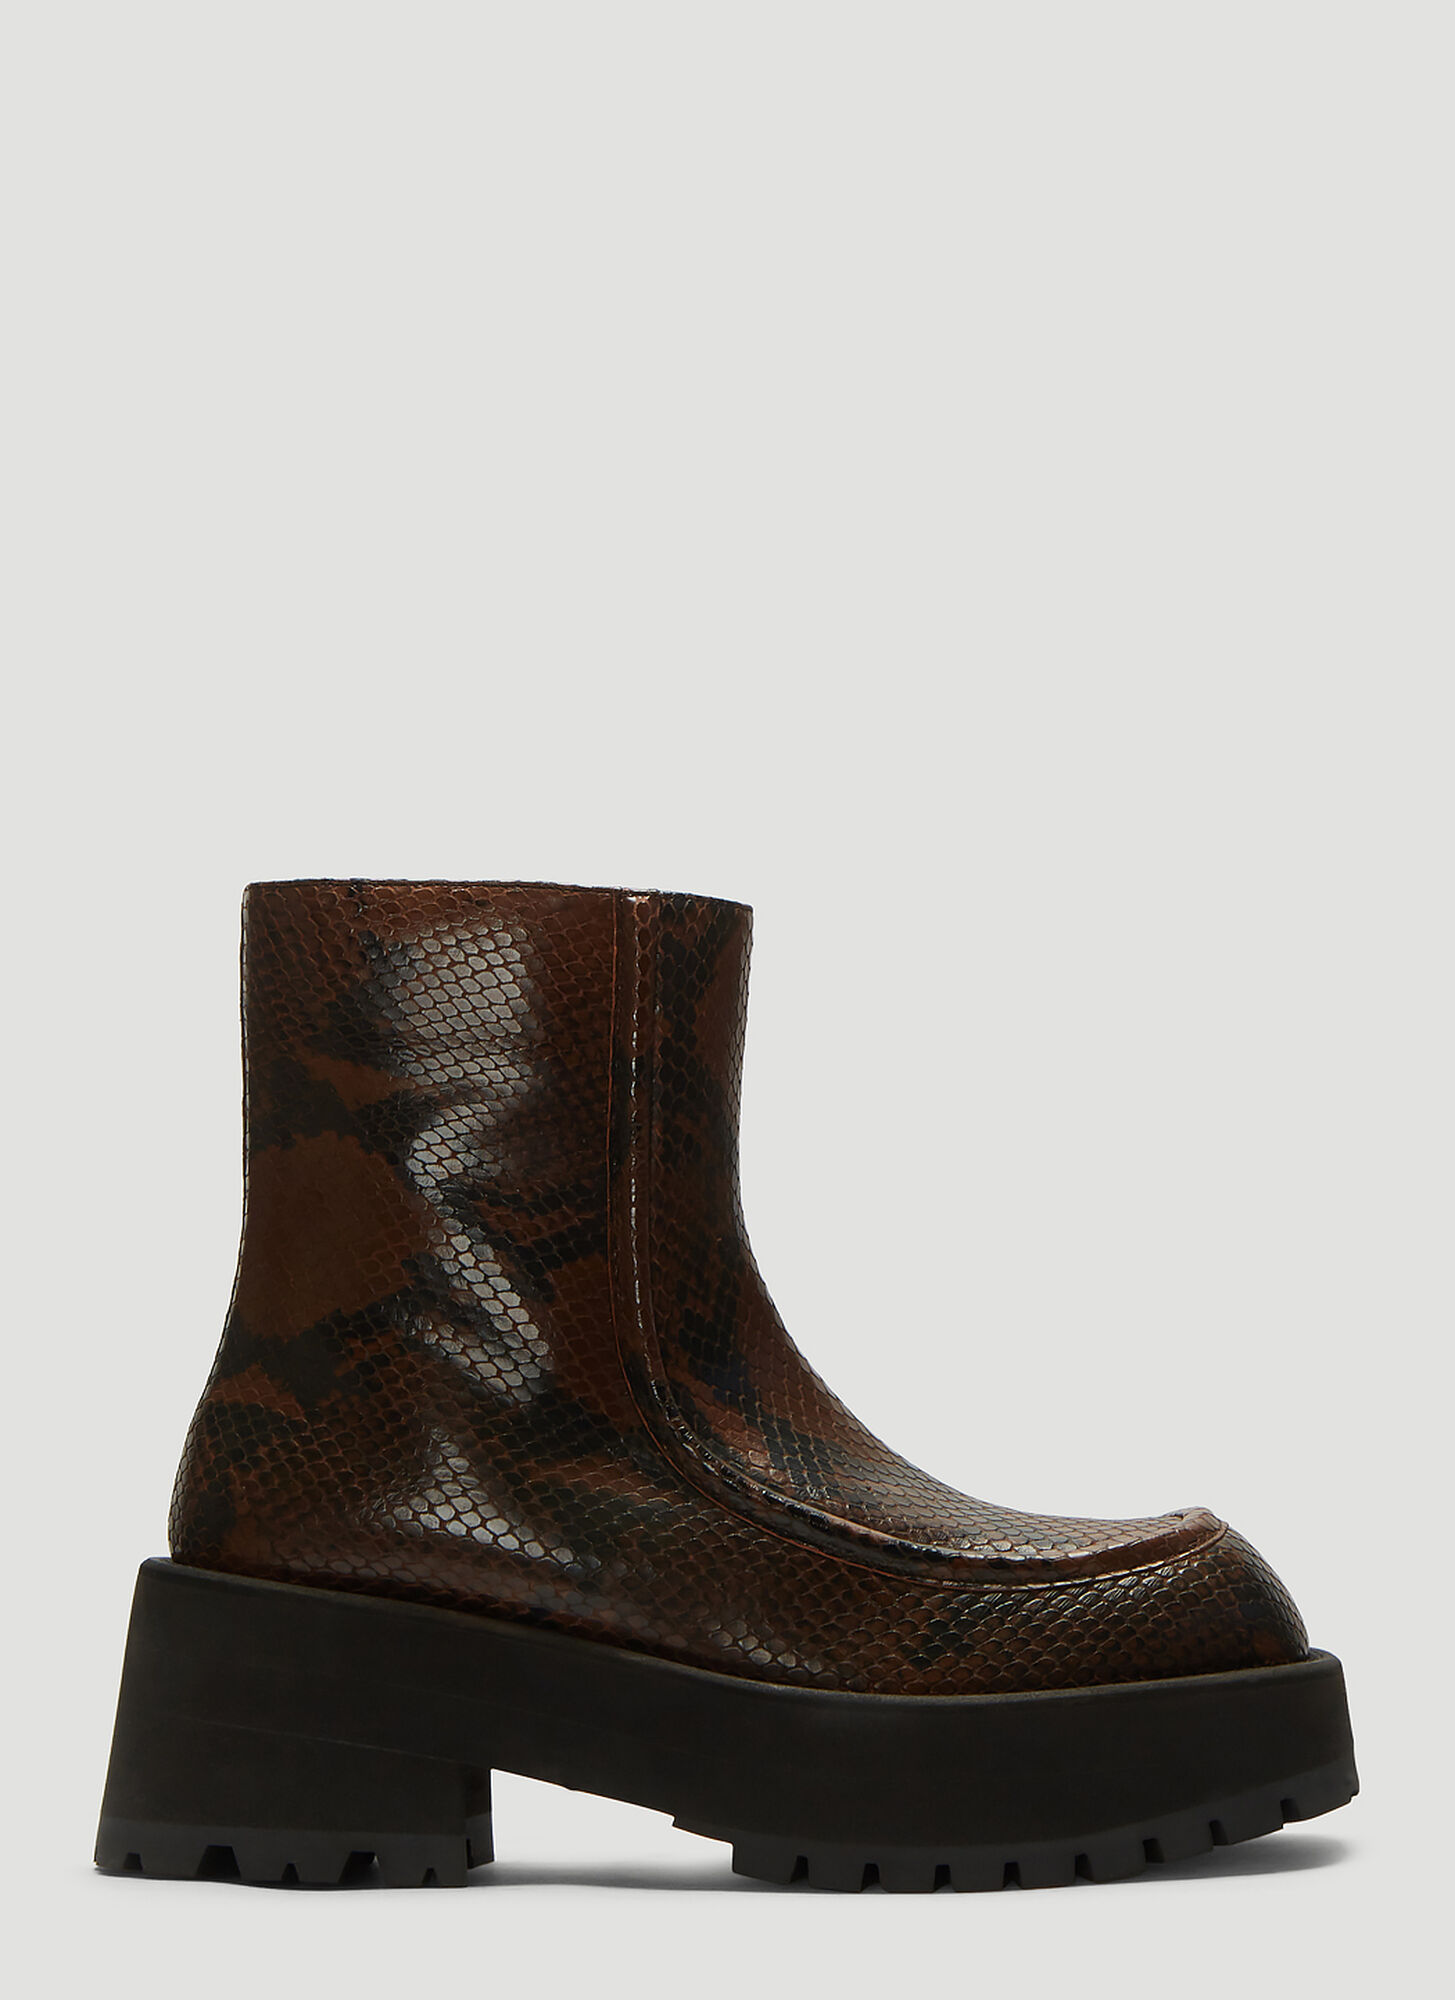 Marni Python Print Leather Boots in Brown